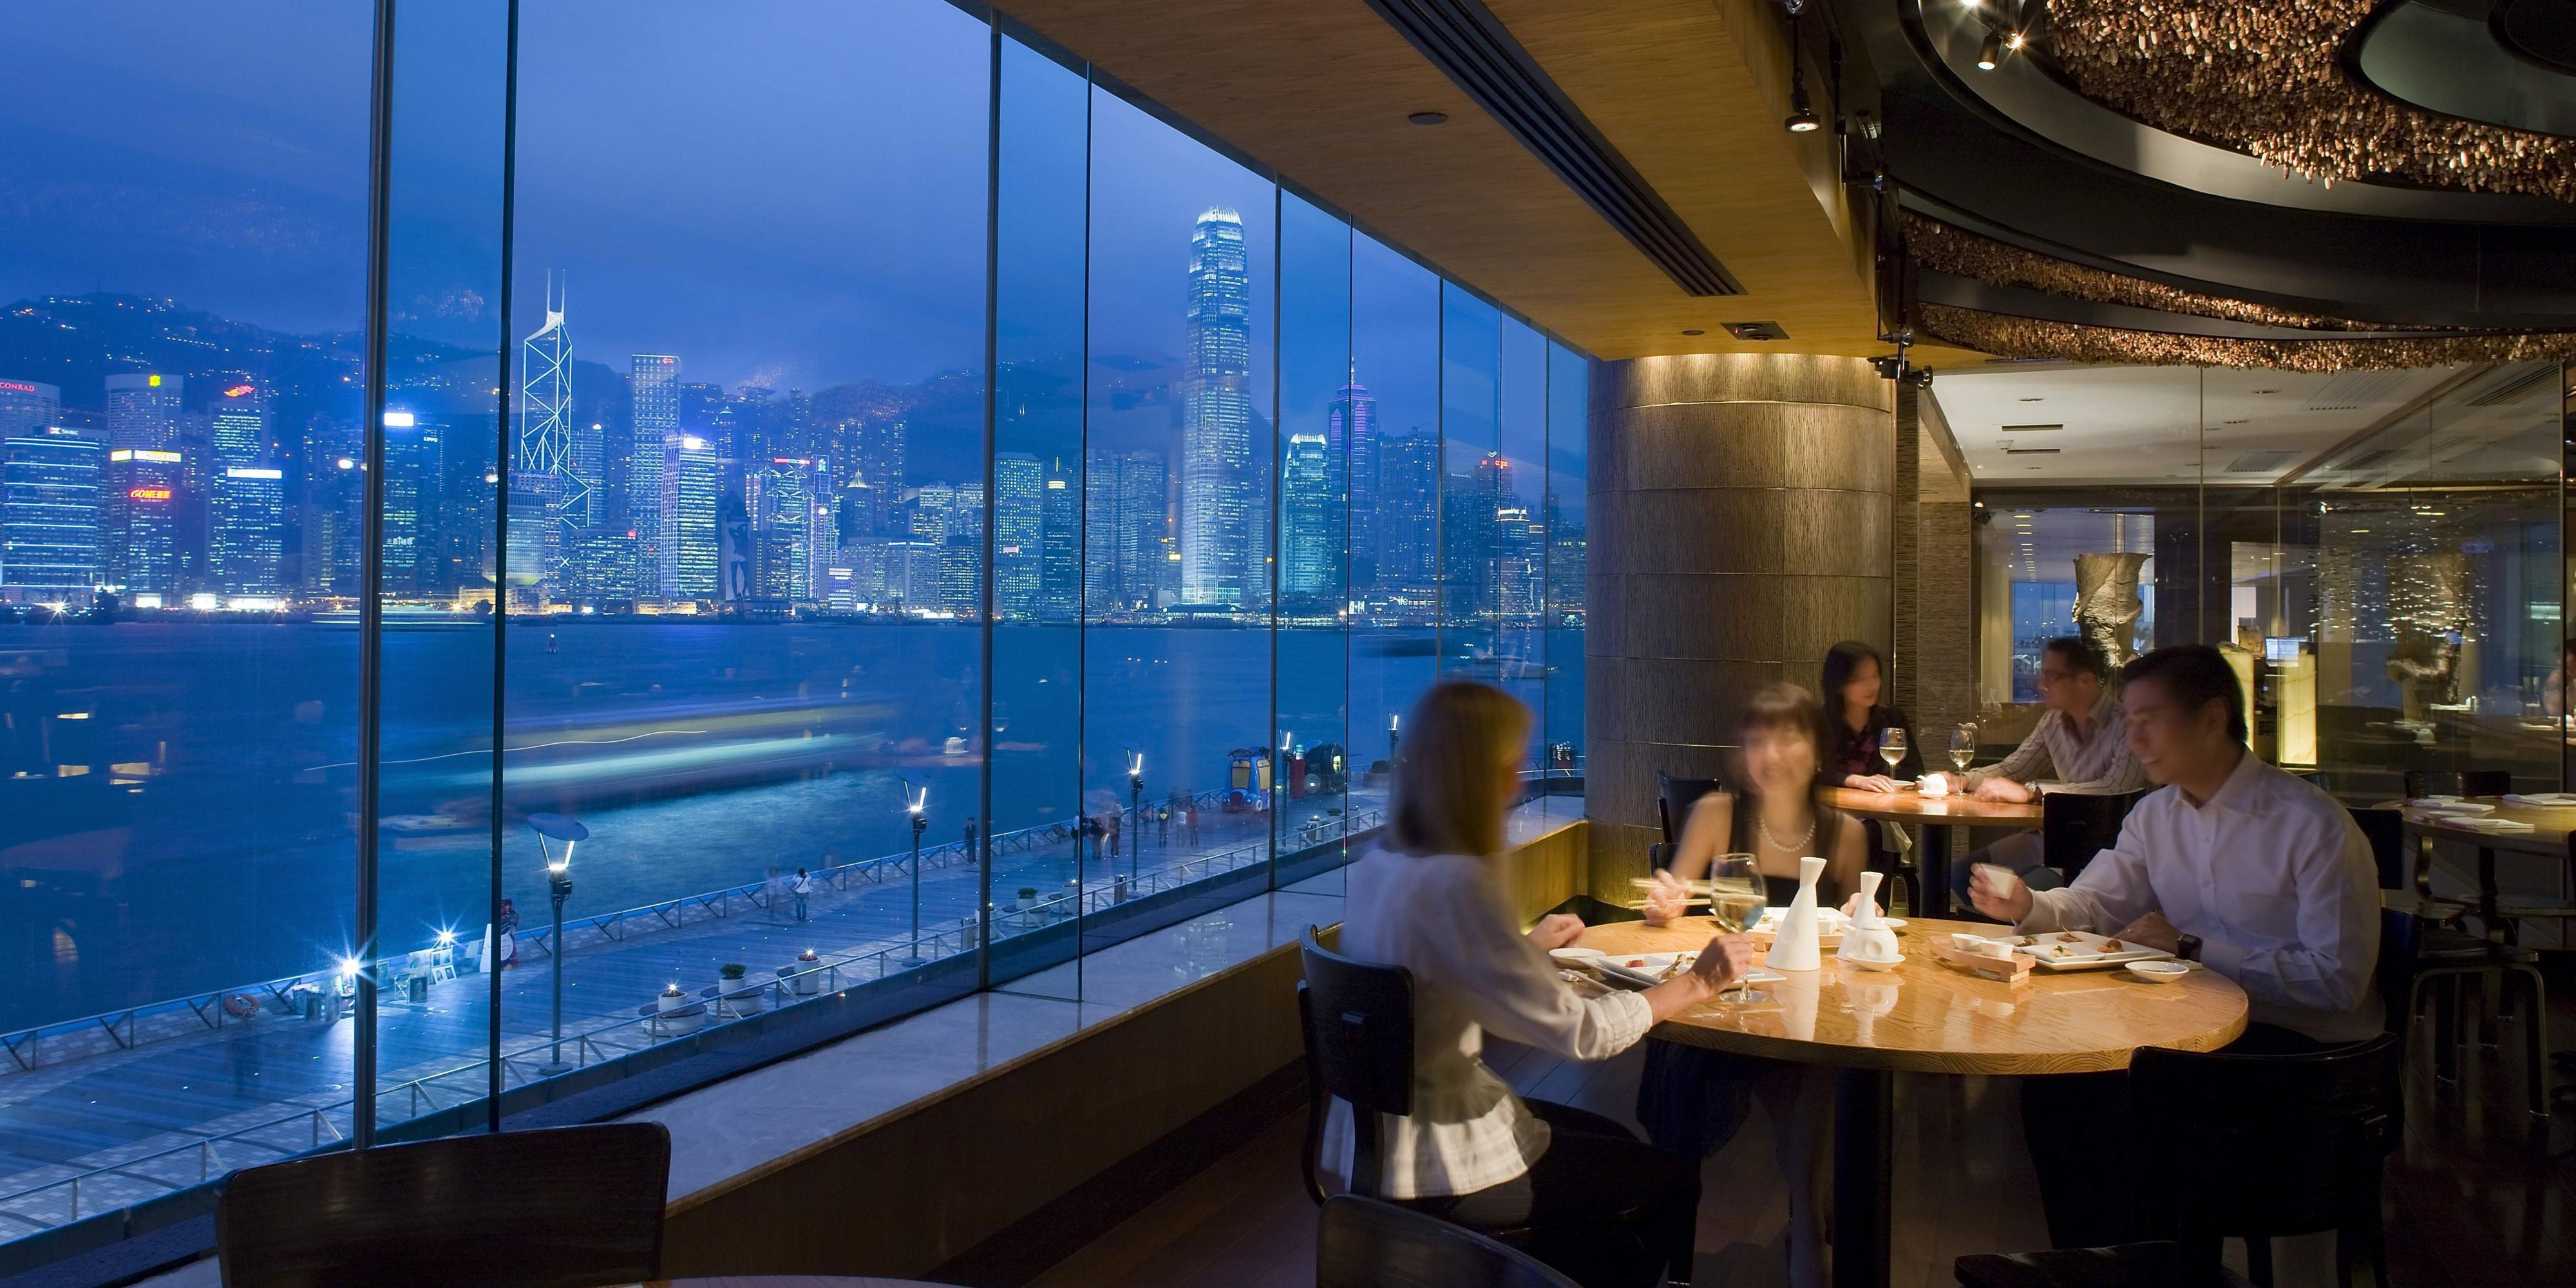 """intercontinental hong kong tsim sha tsui""的图片搜索结果"